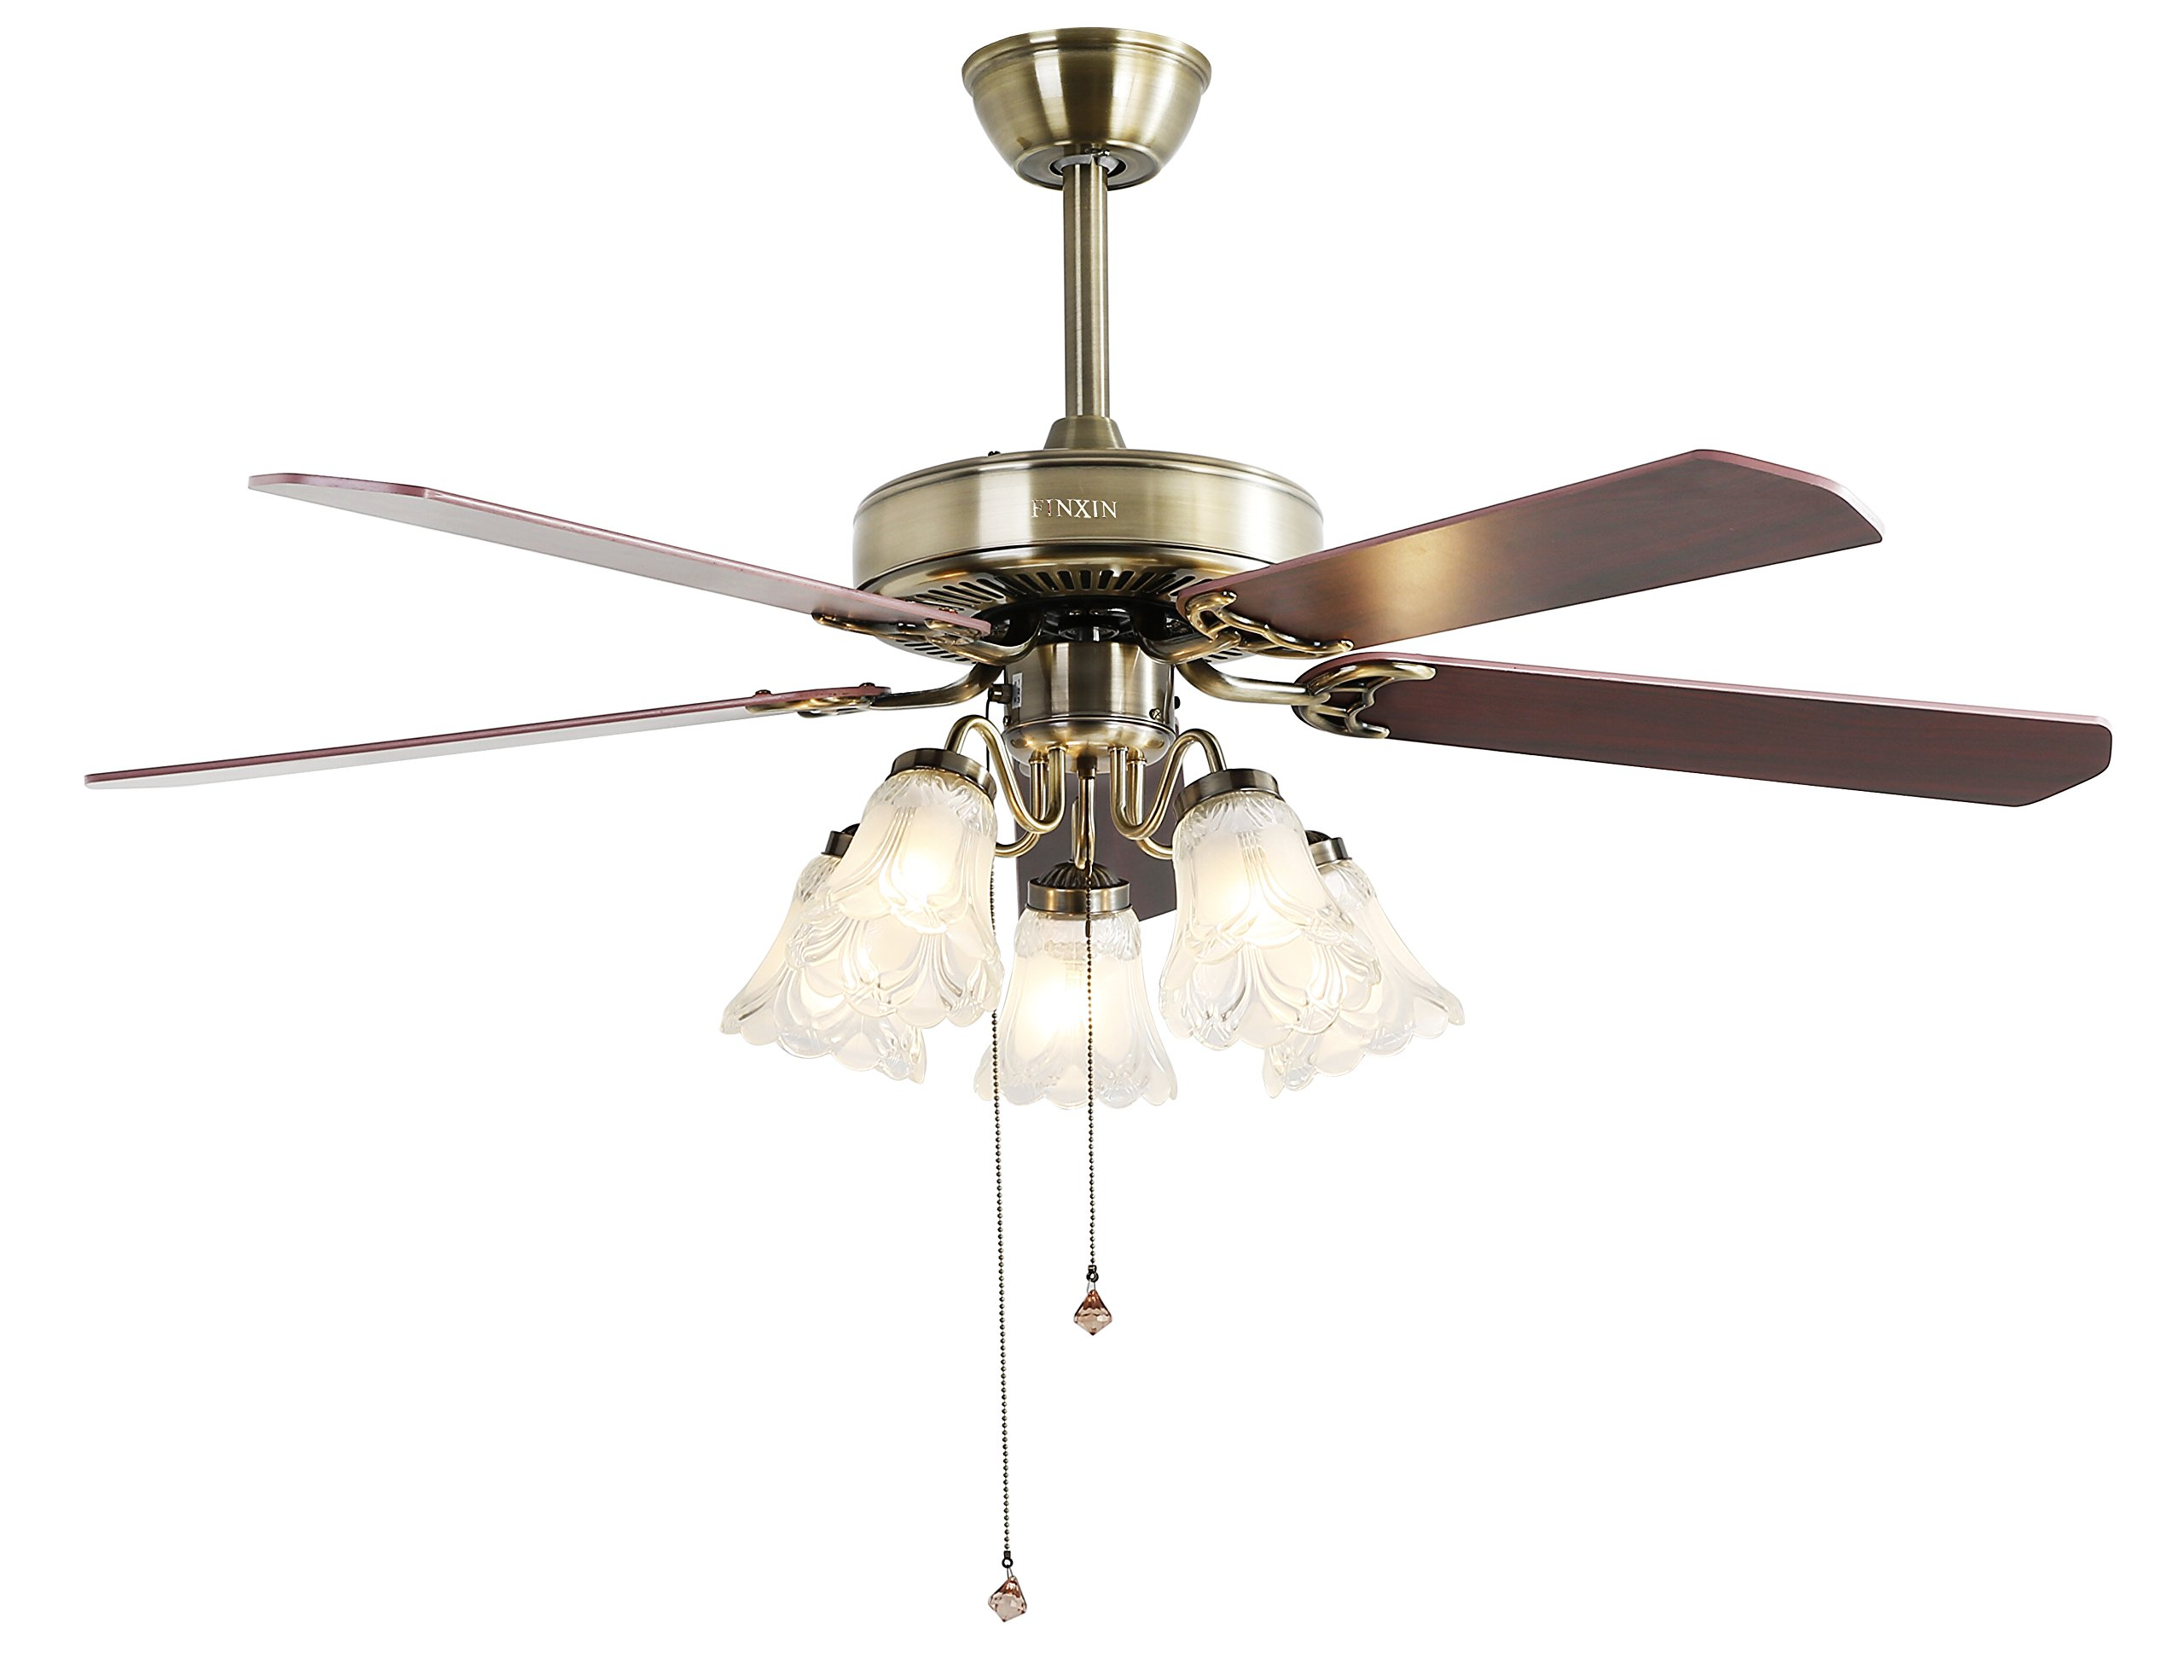 Indoor Ceiling Fan Light Fixtures - FINXIN FXCF02 (New Style) New Bronze 52 Ceiling Fans For Bedroom,Living Room,Dining Room Including 3 Speed Reversible Motor,Light(5-Halogen 200W),5-Blades (Bronze) by FINXIN